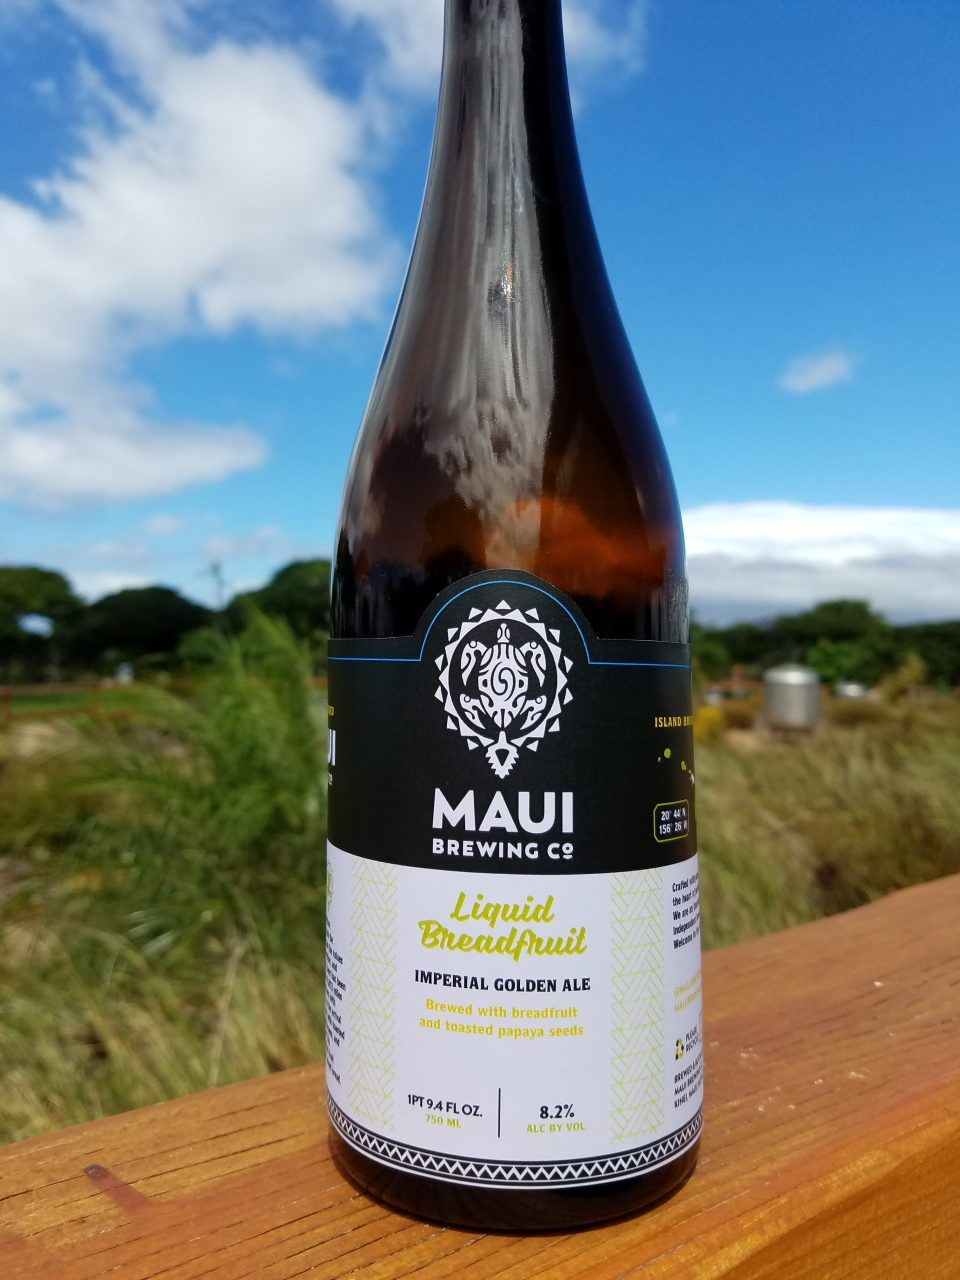 Maui Liquid Breadfruit